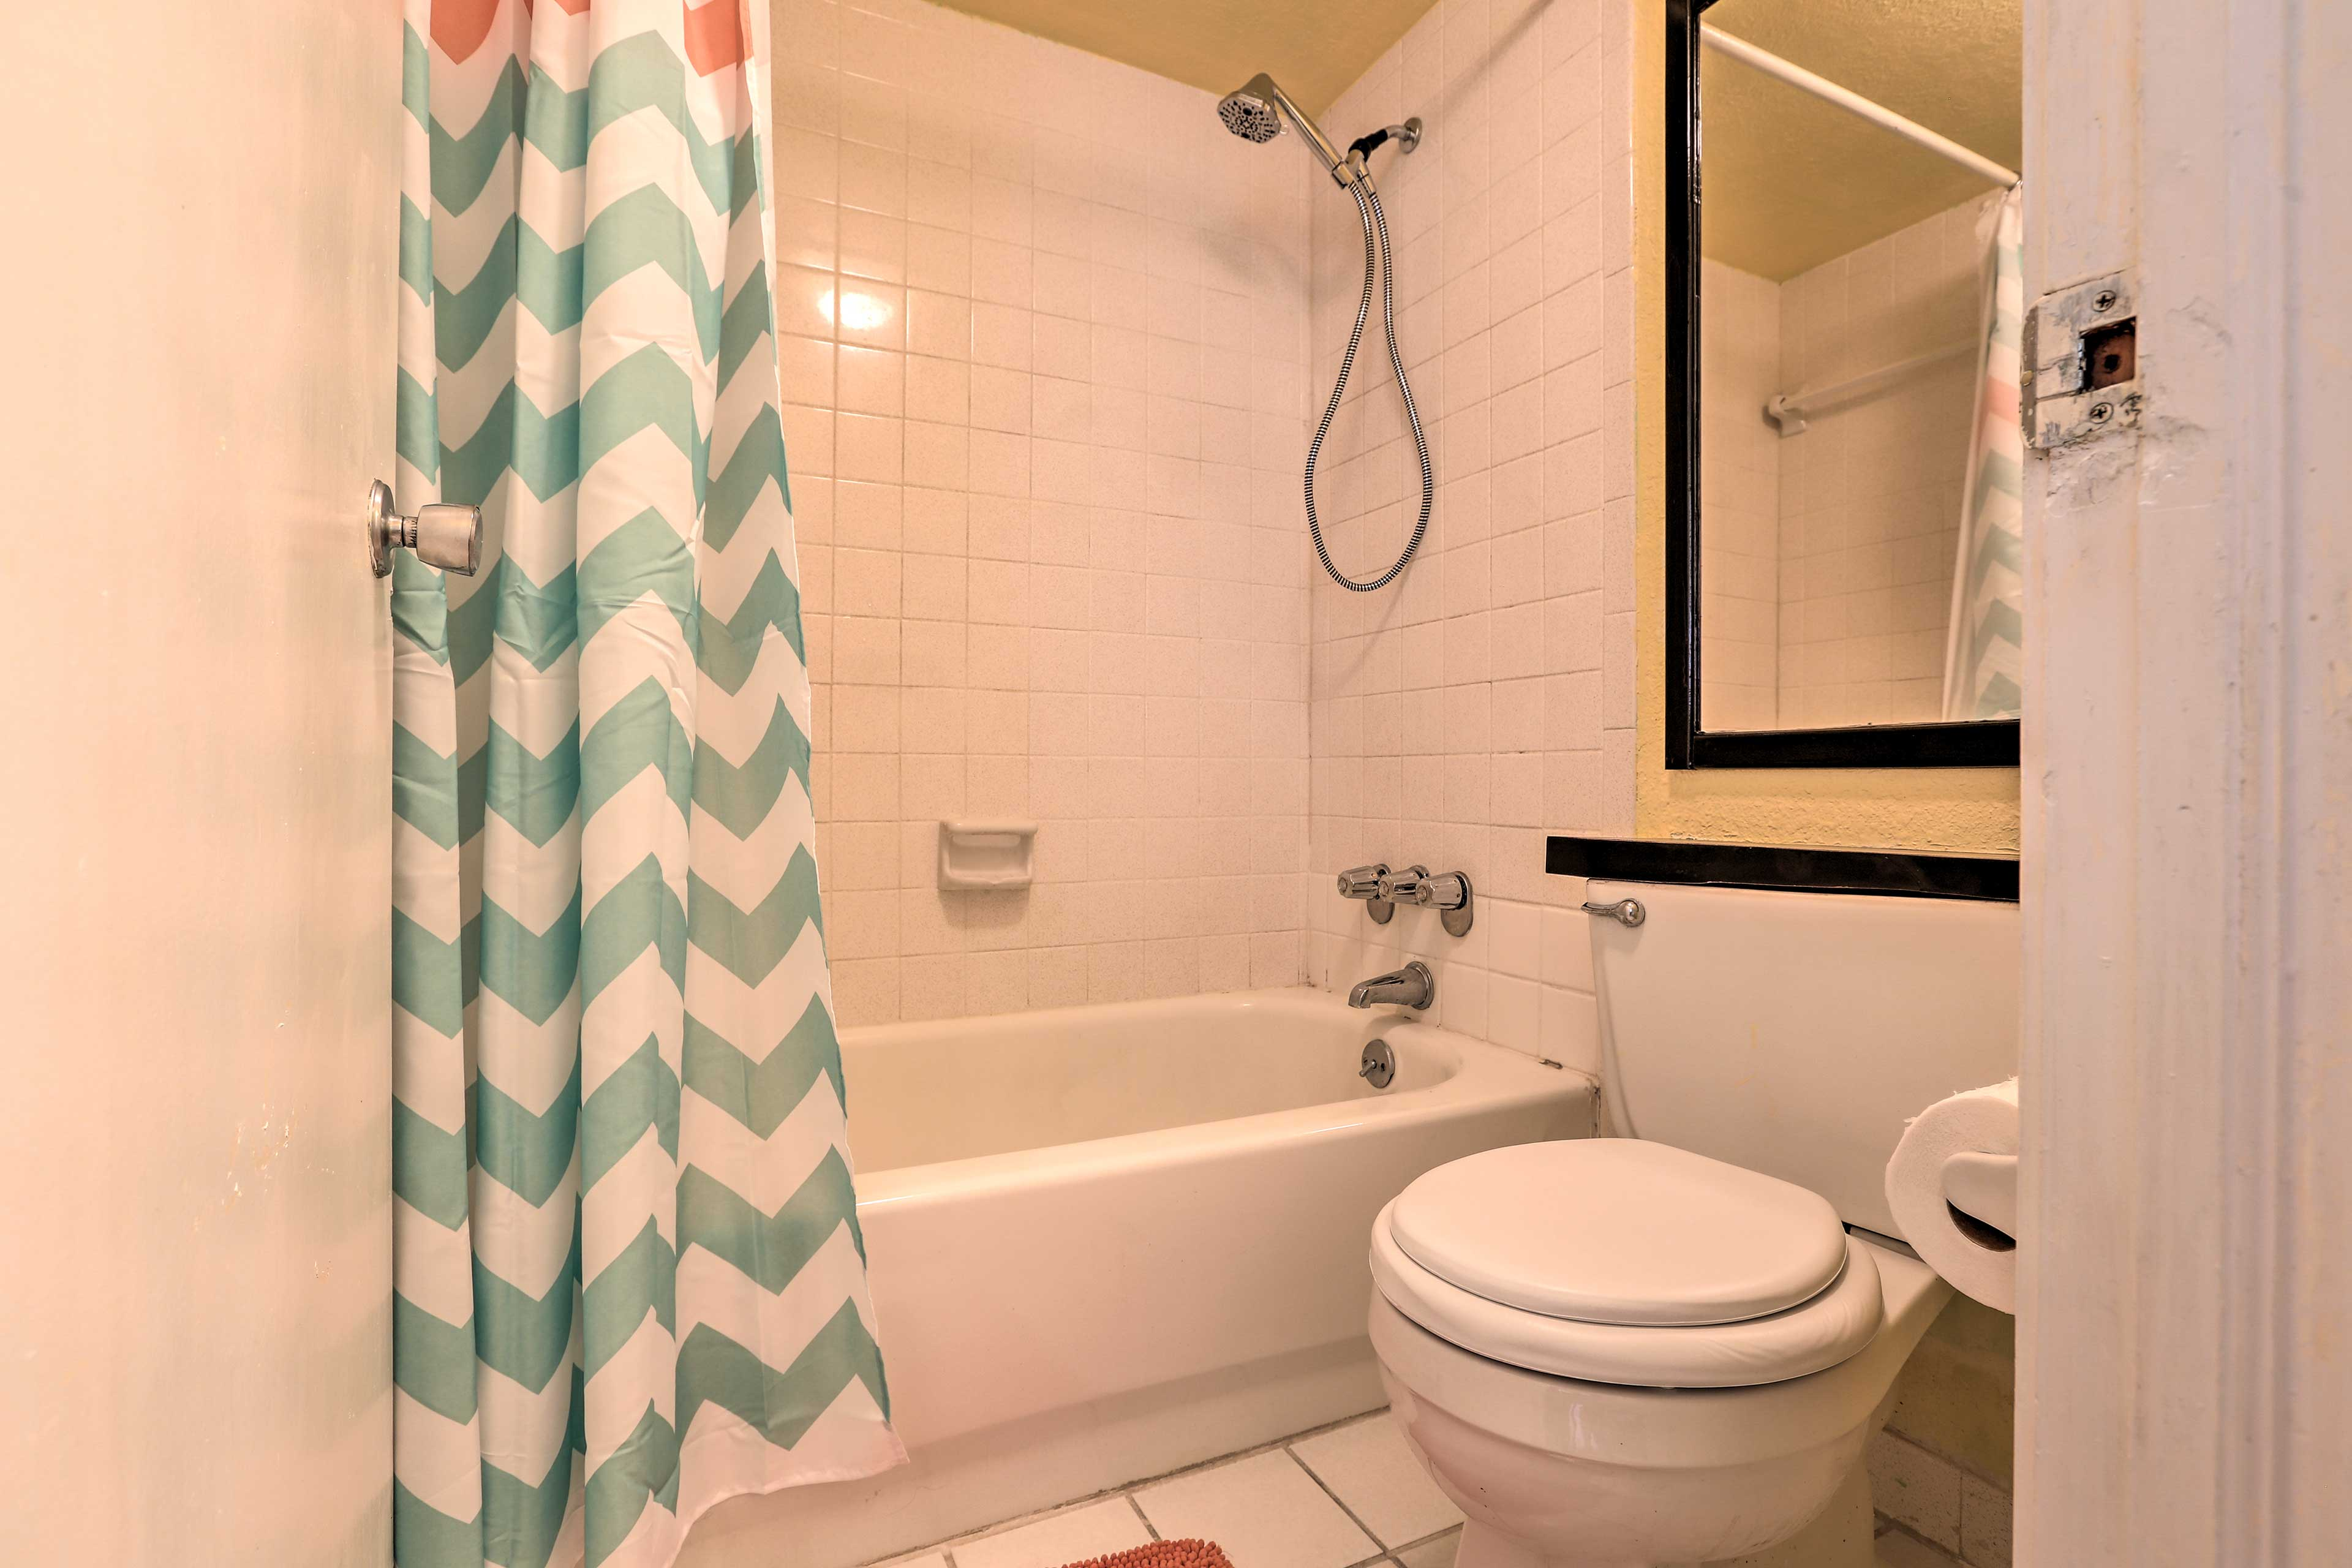 Soak in the tub or enjoy a quick rinse in the shower.